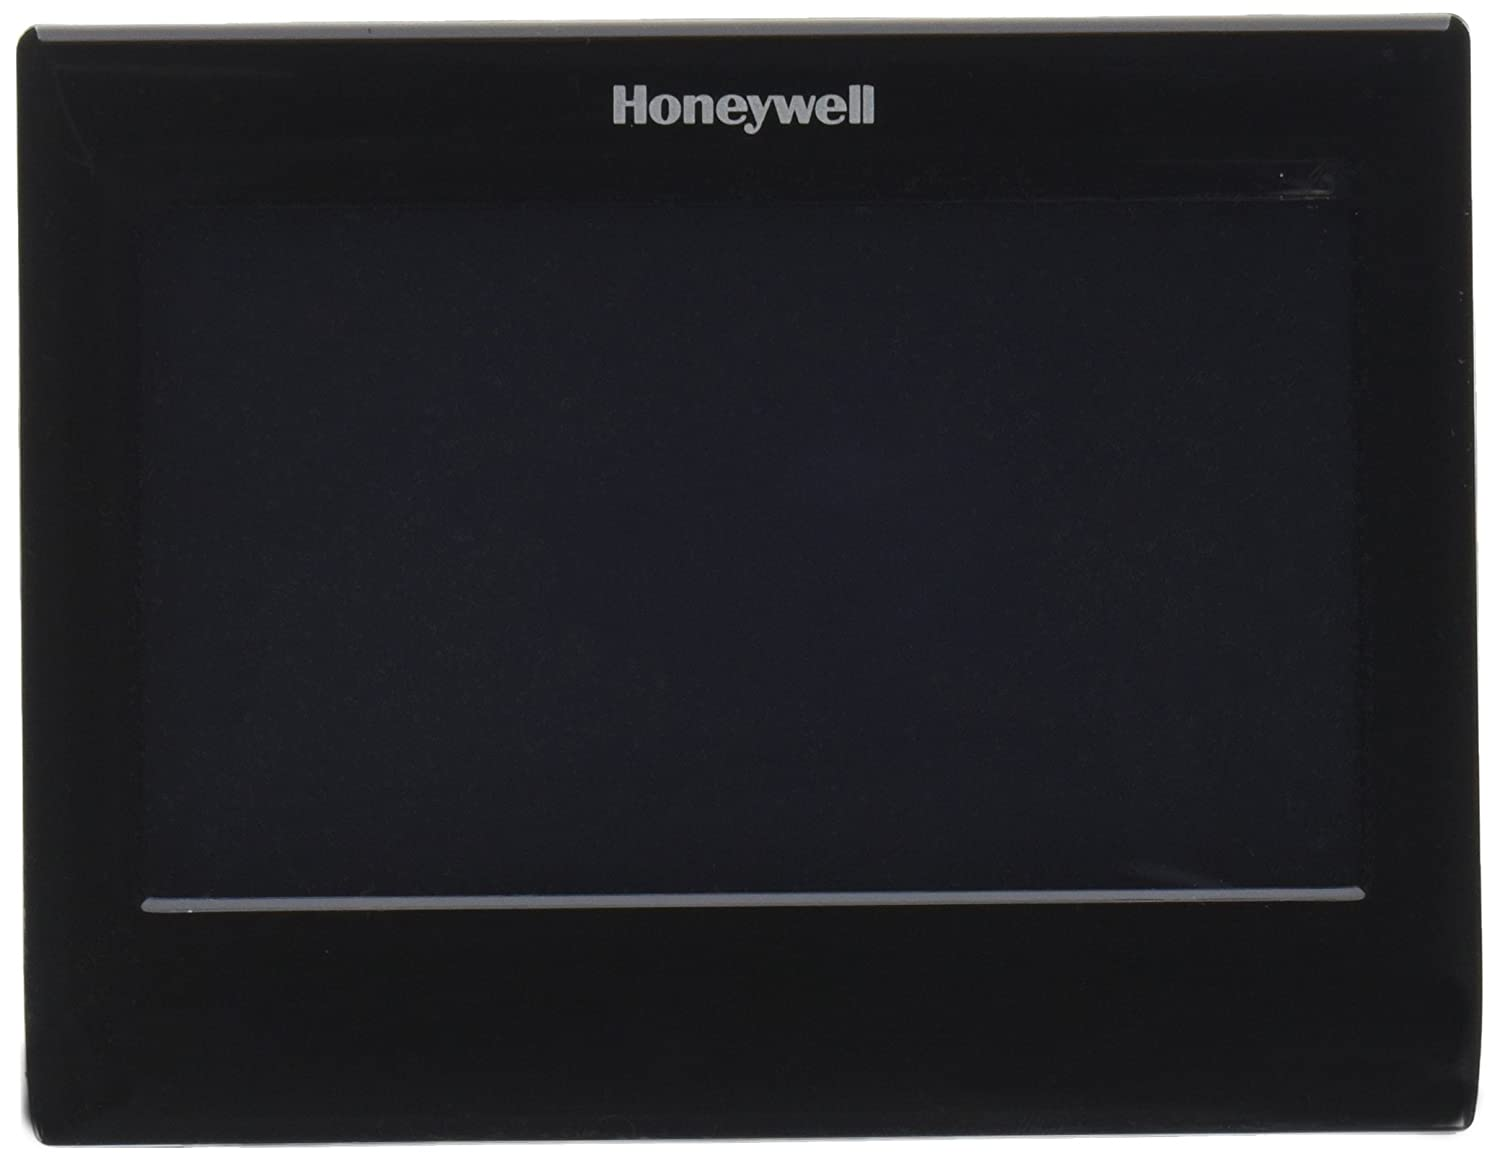 Amazon.com: Honeywell TH9320WFV6007 Wi-Fi 9000 Color Touchscreen Thermostat  with Voice Control: Home Improvement